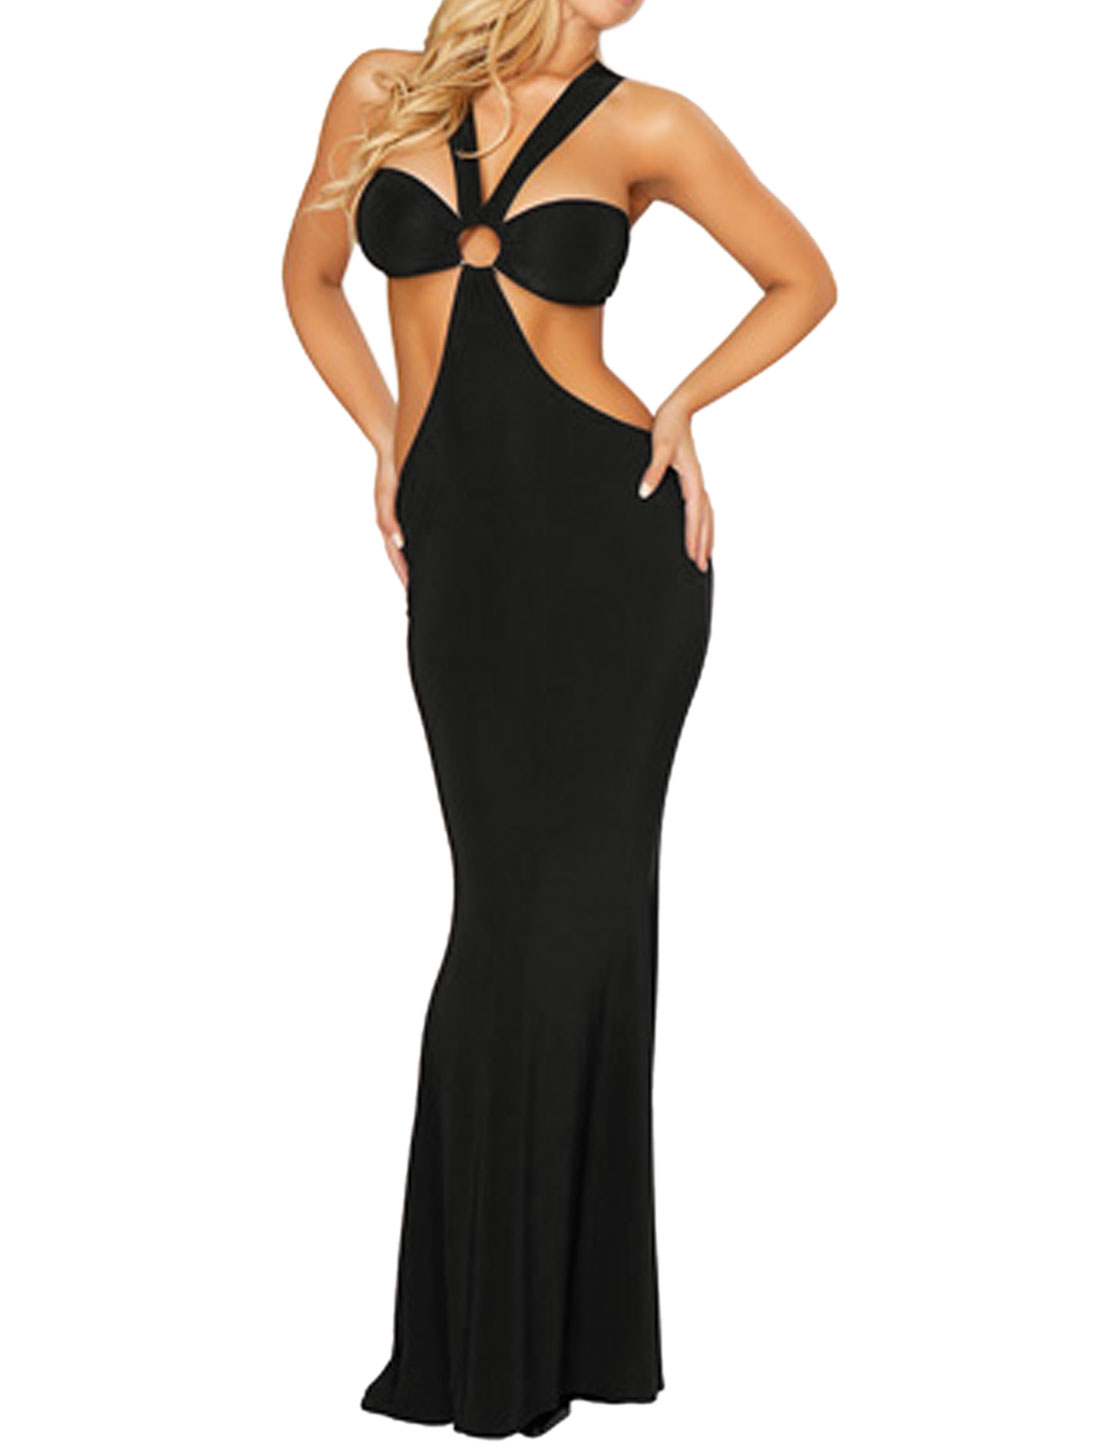 Women Halter Neck Metal Cut Out Maxi Dress w Thong Black S